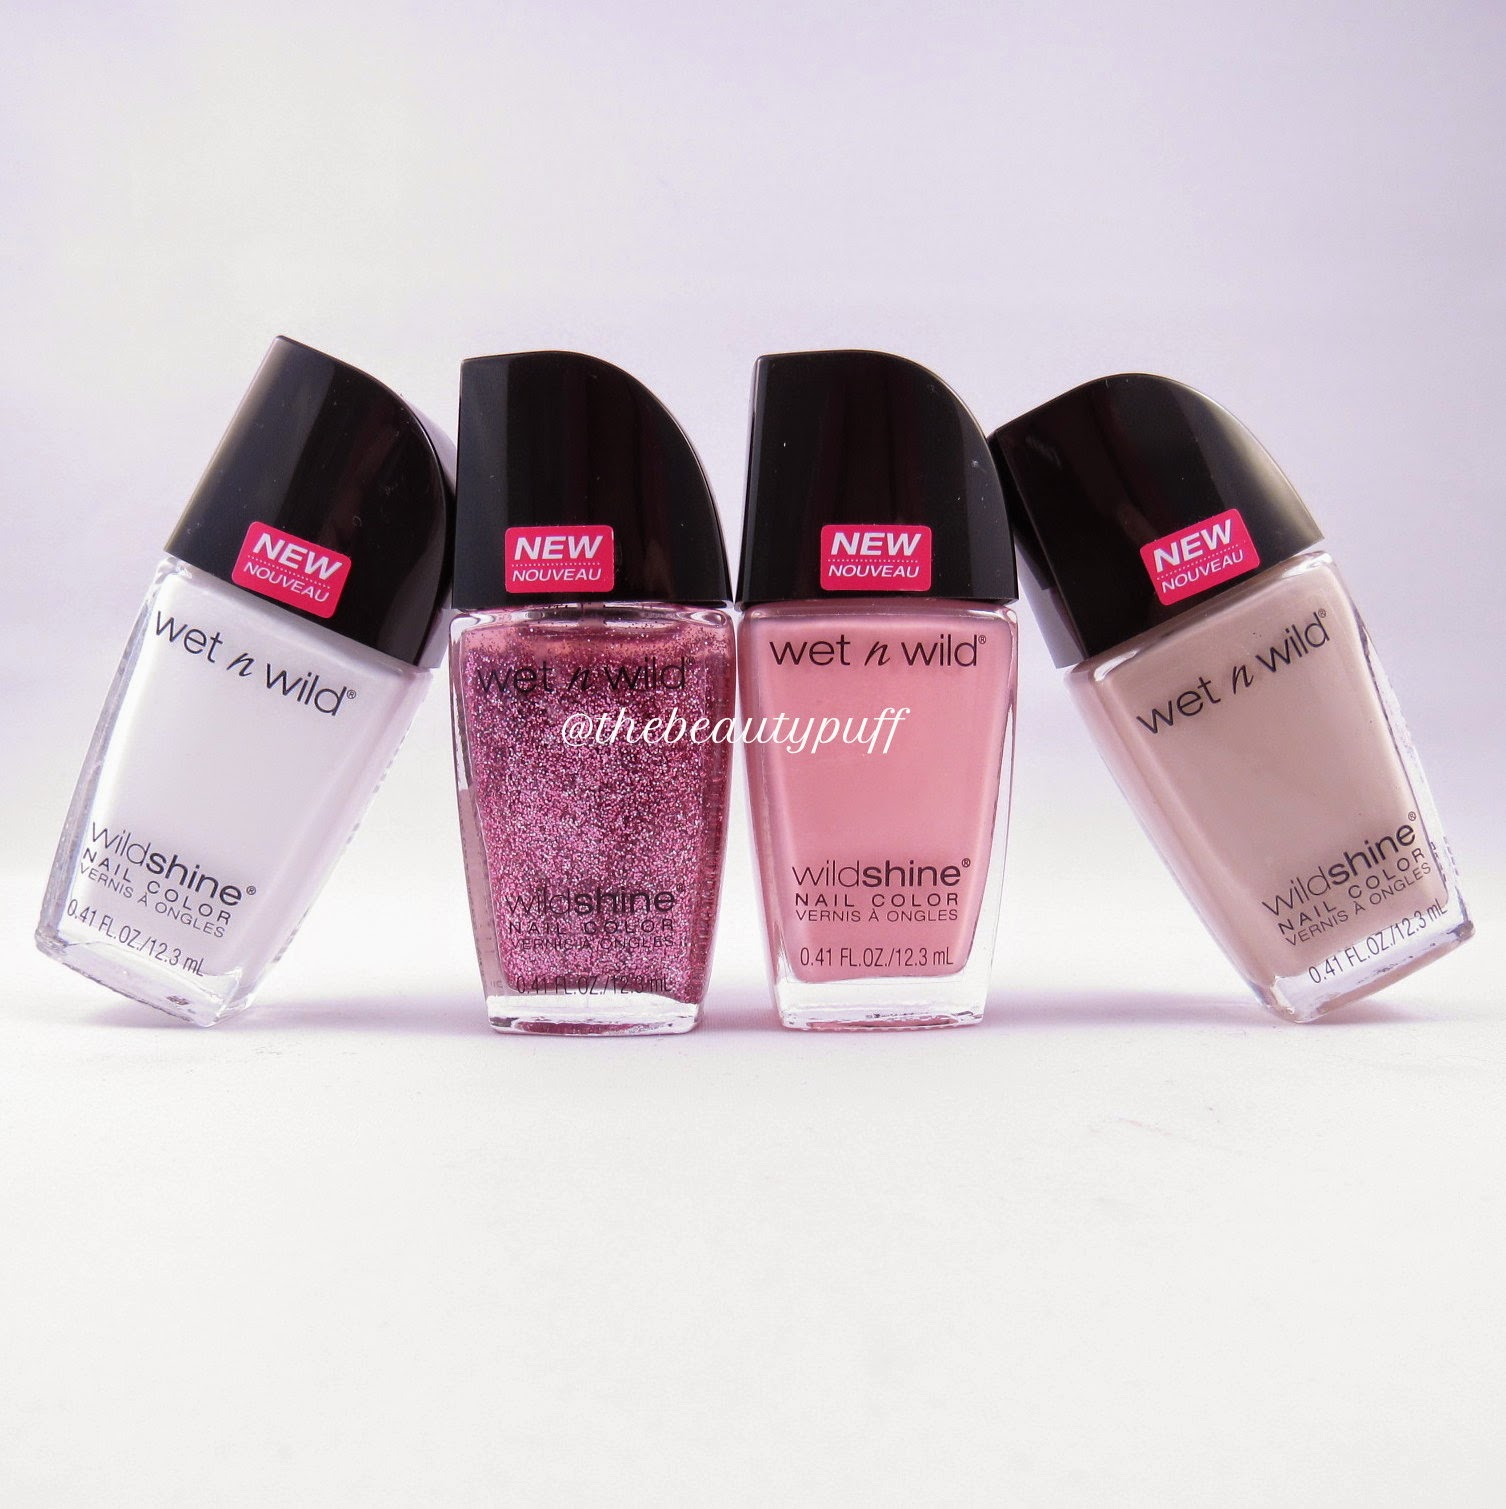 wet n wild wild shine nail color - the beauty puff